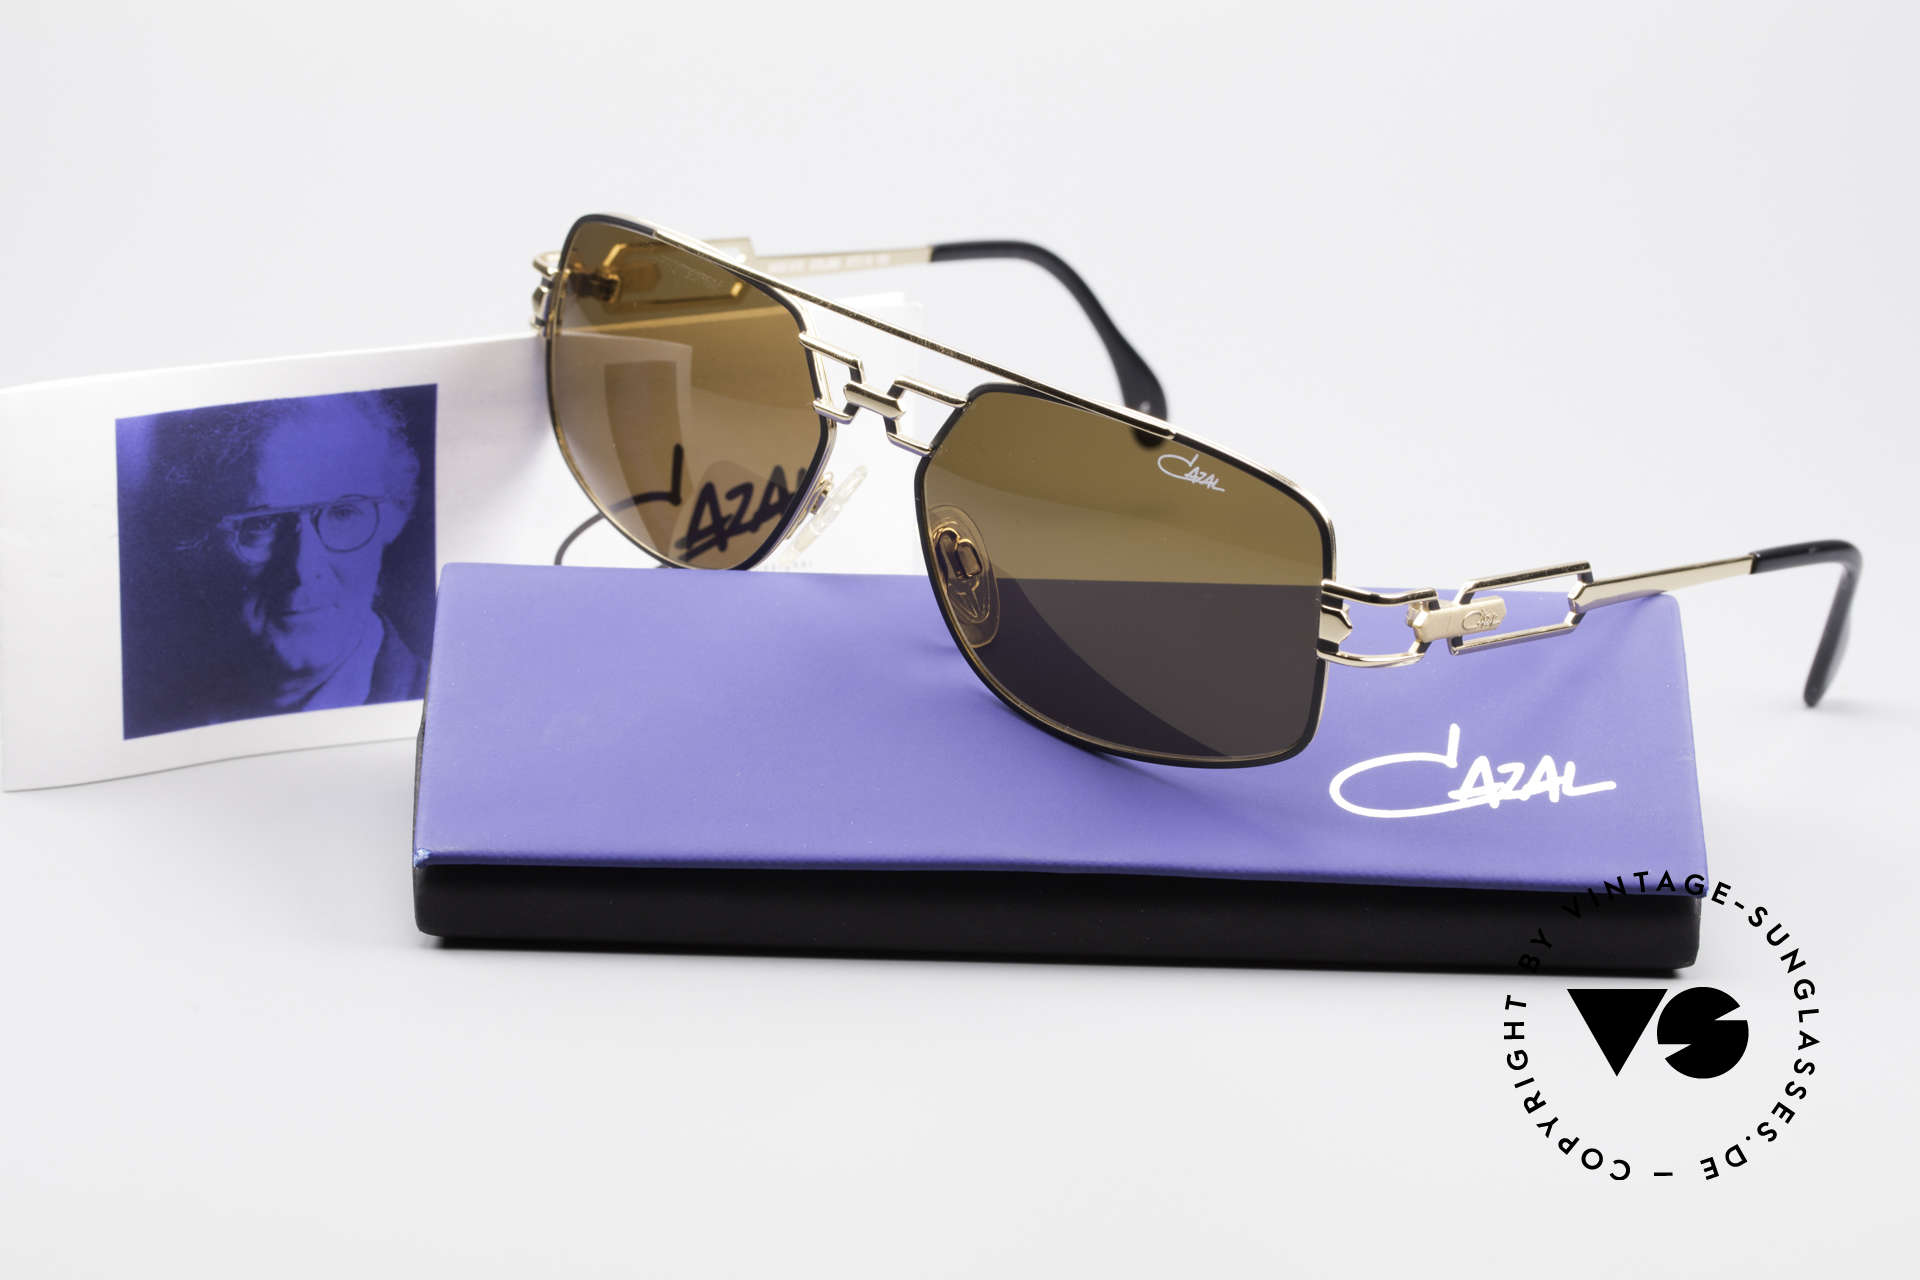 Cazal 972 True 90's No Retro Sunglasses, orig. brown Cazal sun lenses with UV PROTECTION mark, Made for Men and Women